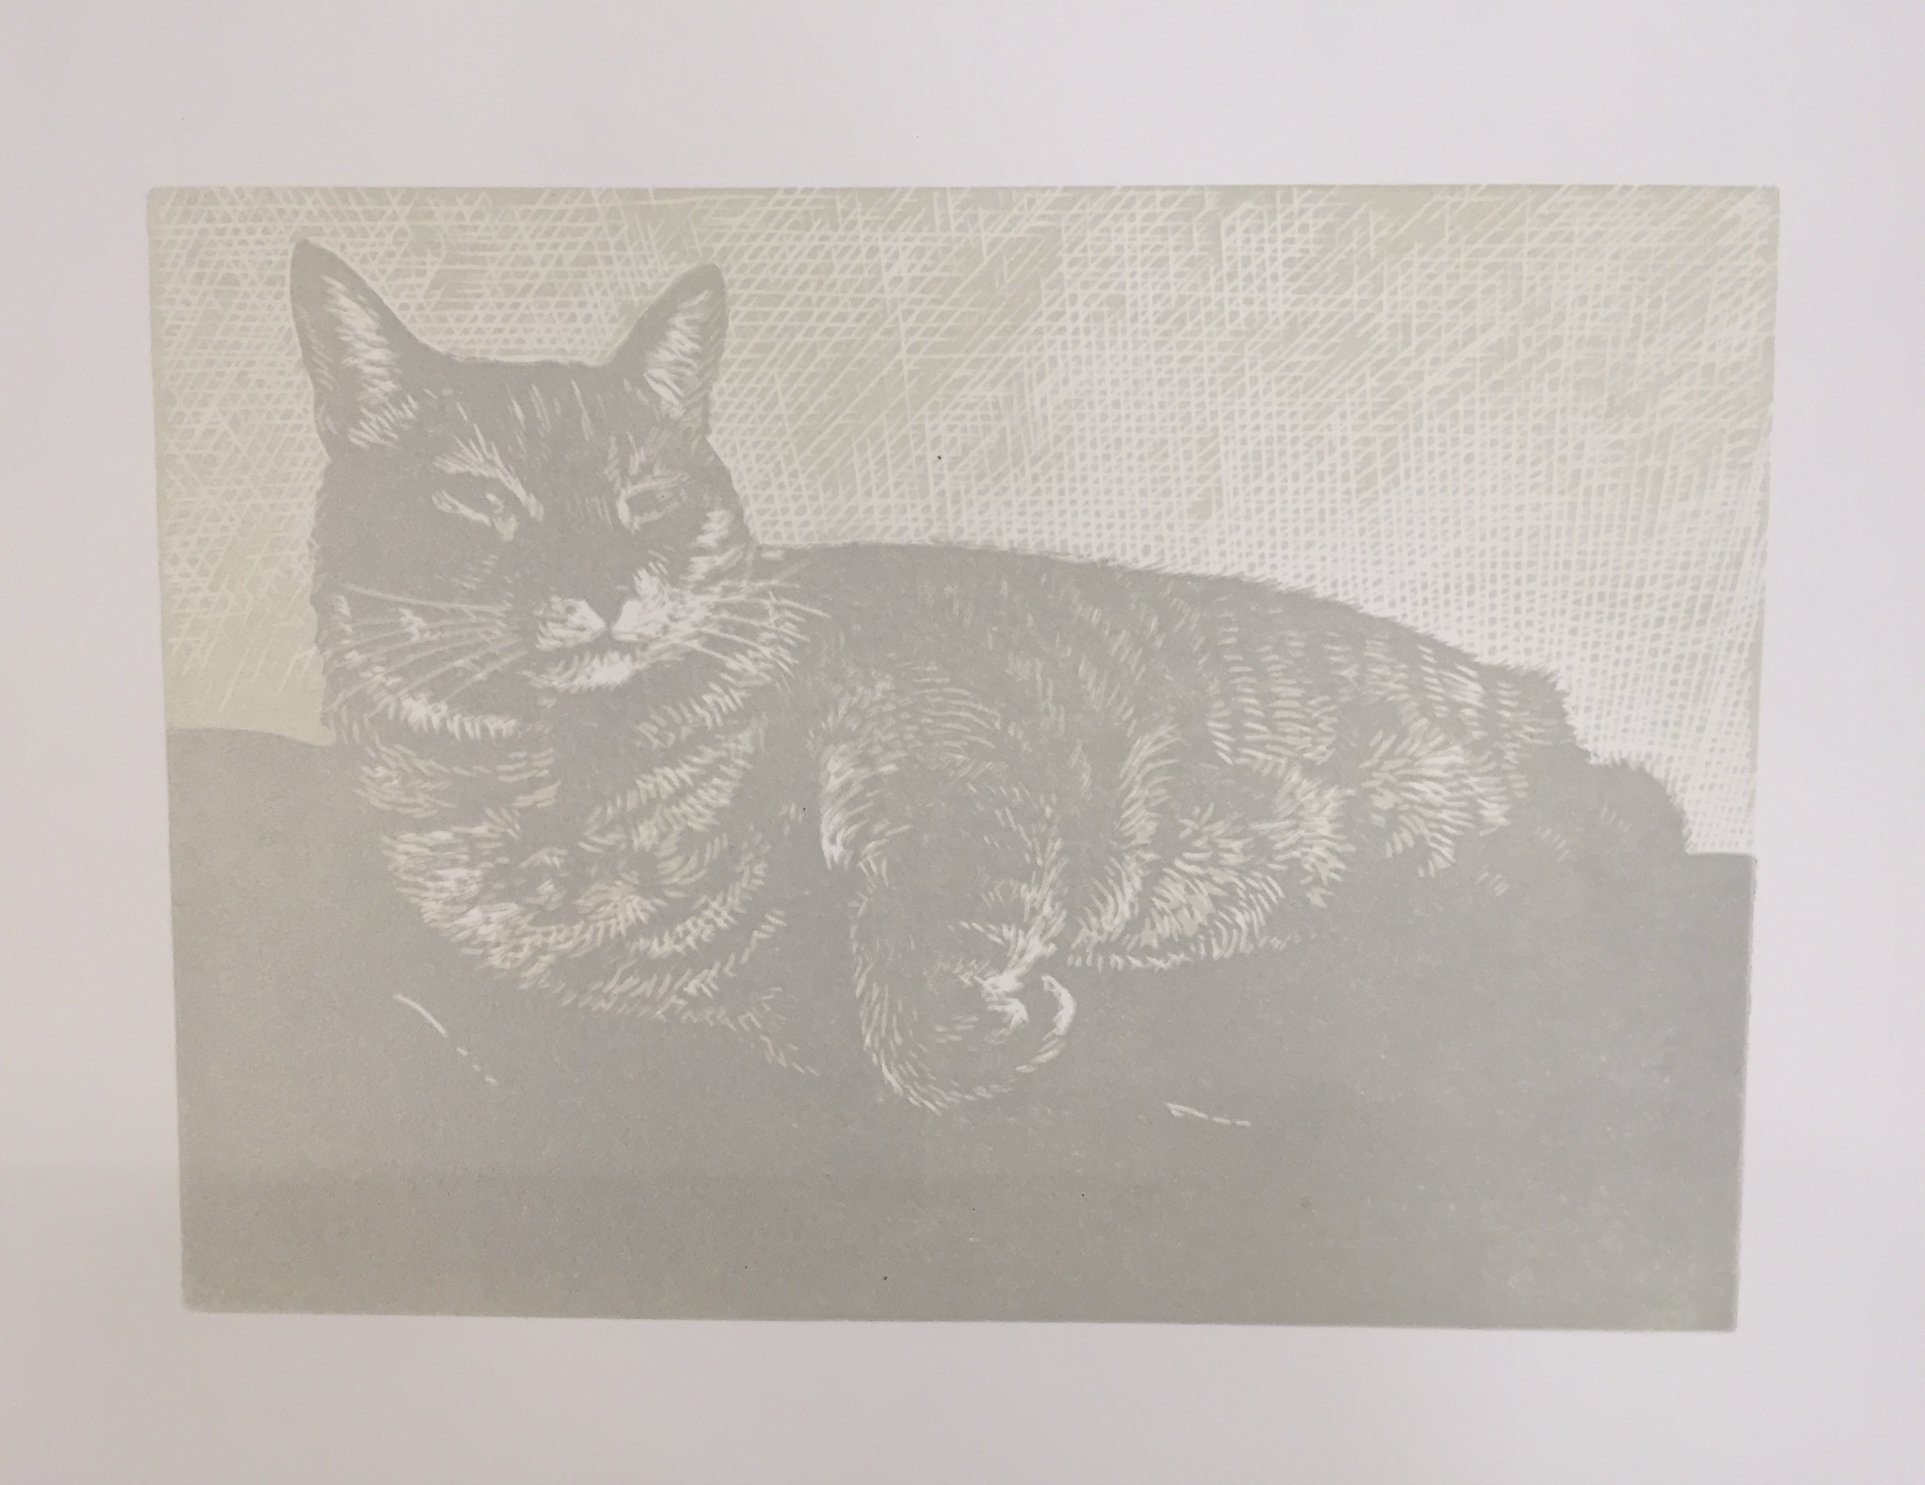 Here is the third color printed on top of the first two colors on the paper. There is a value and color difference between the cat and the wall behind. The highlights on the fur have started to emerge. The details that I had planned on in the drawing are starting to become visible.